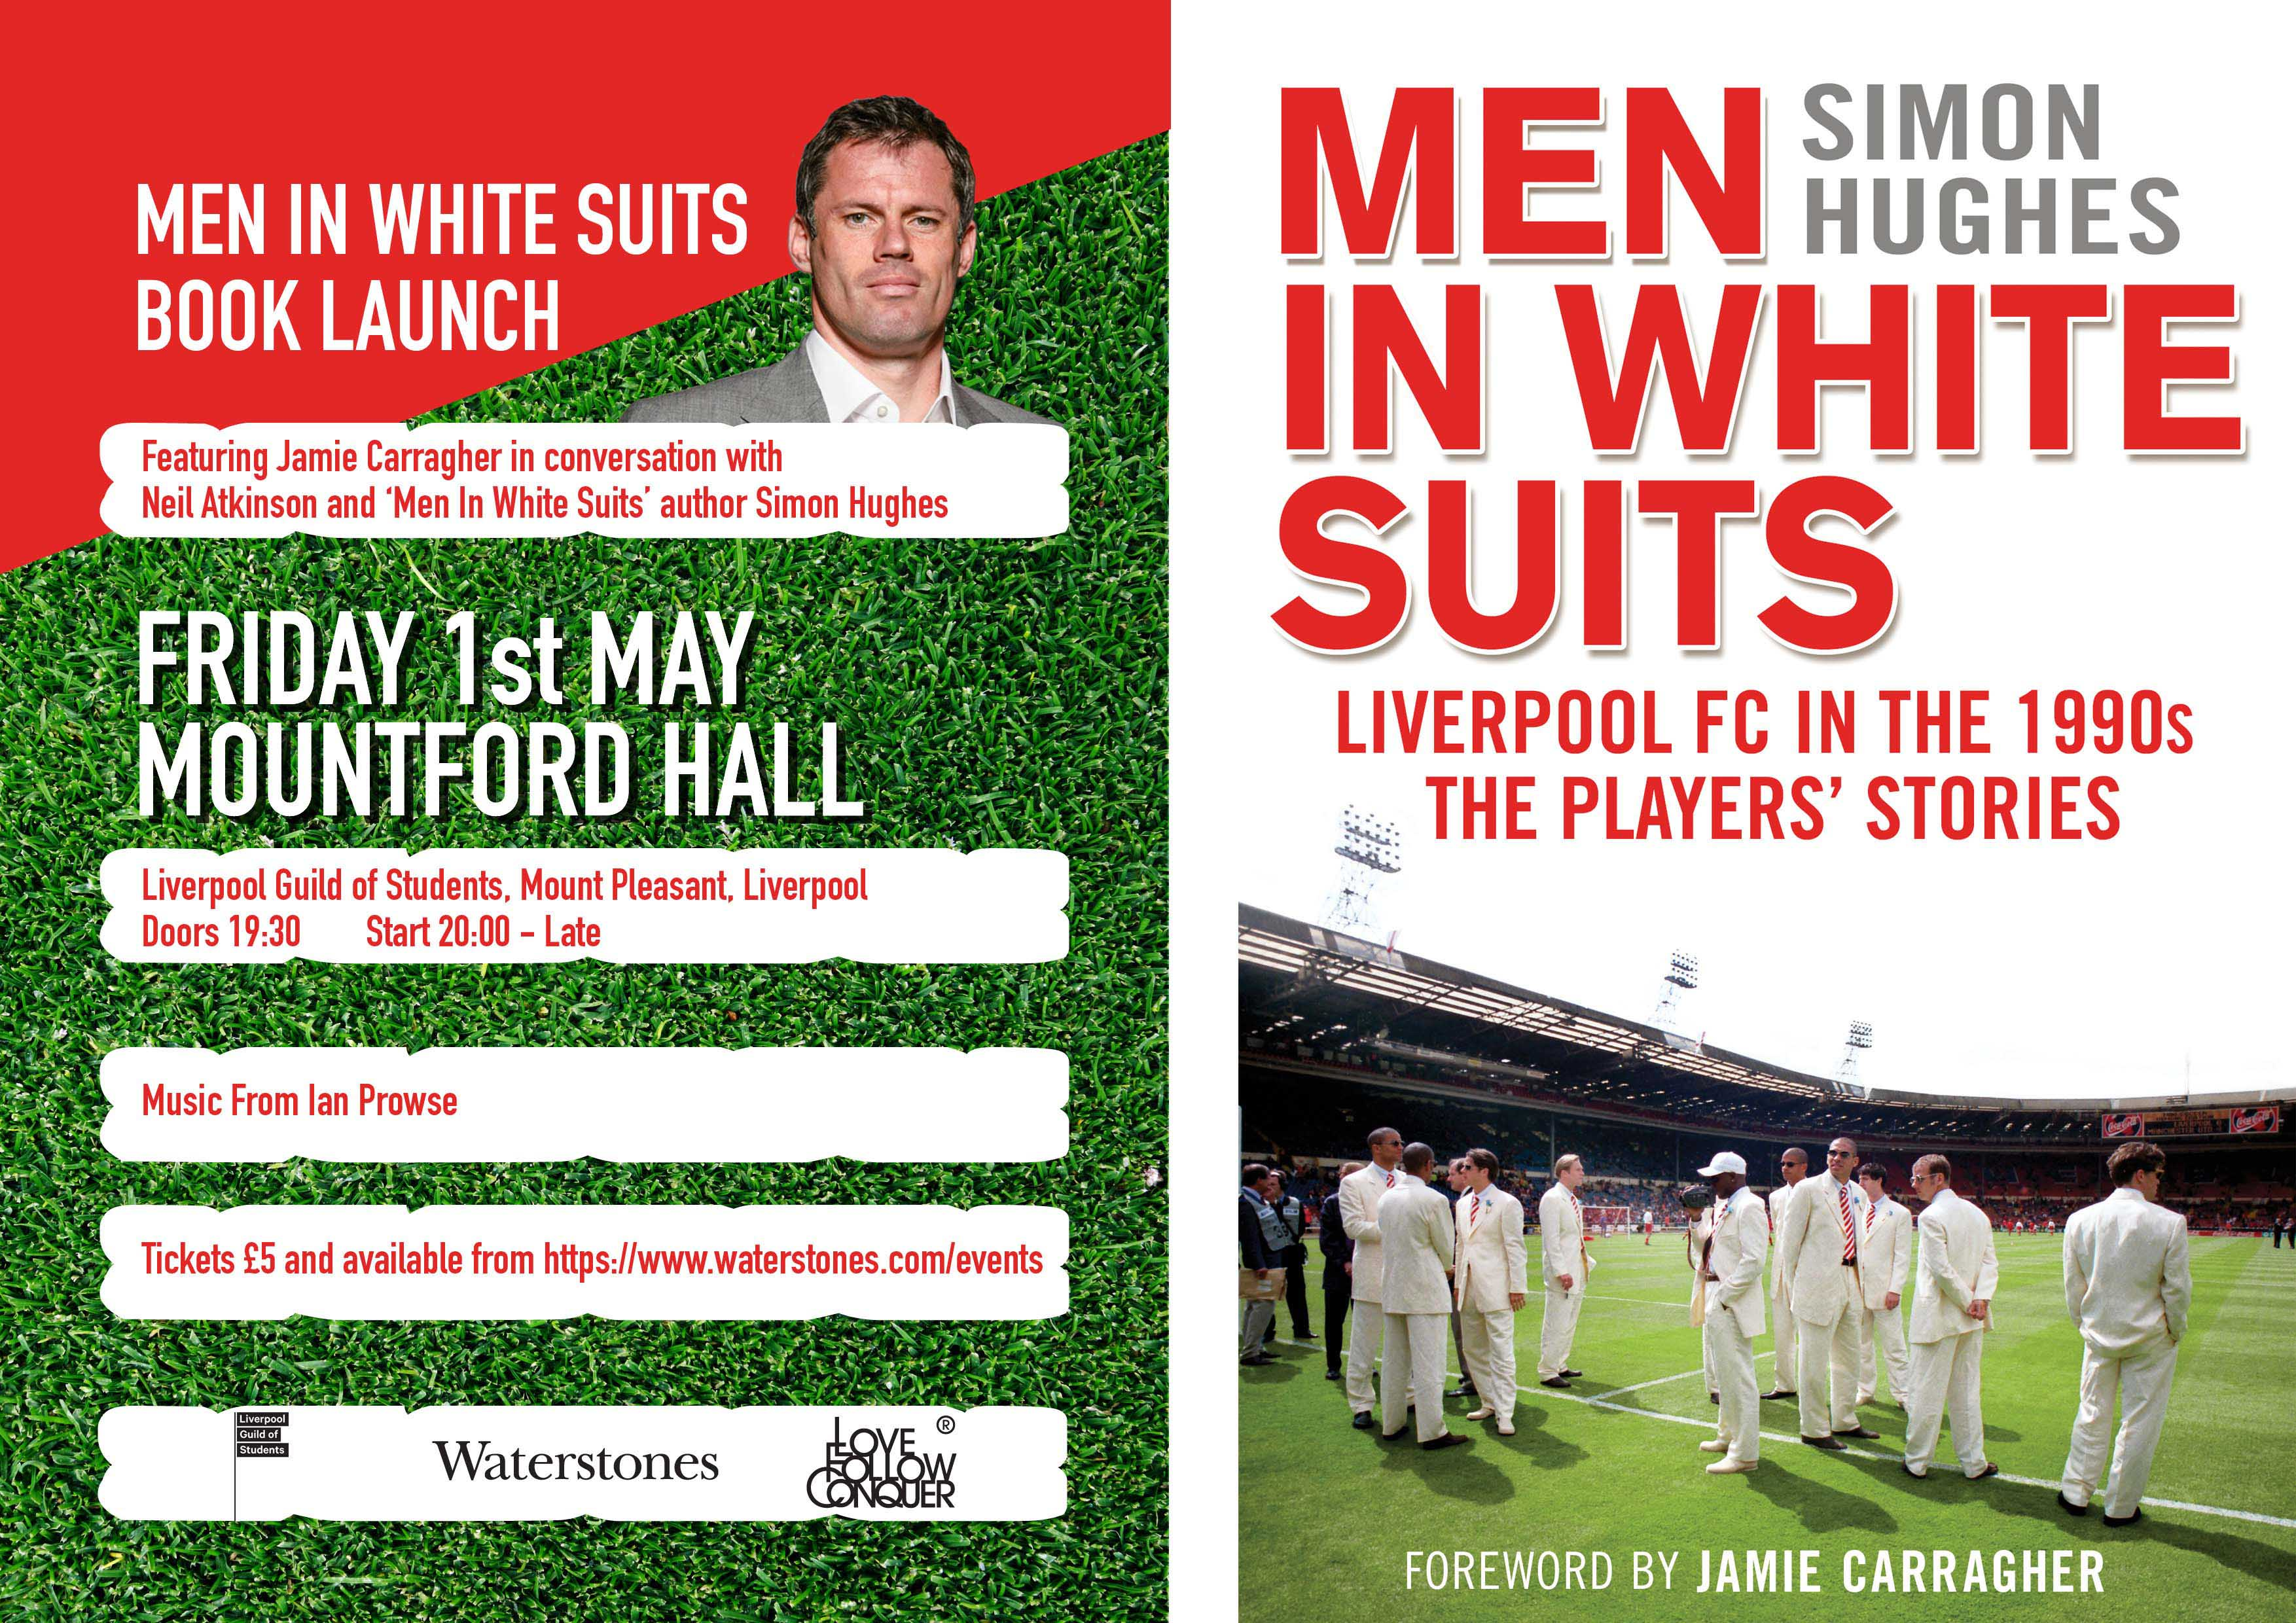 MEN IN WHITE SUITS BOOK LAUNCH WITH JAMIE CARRAGHER